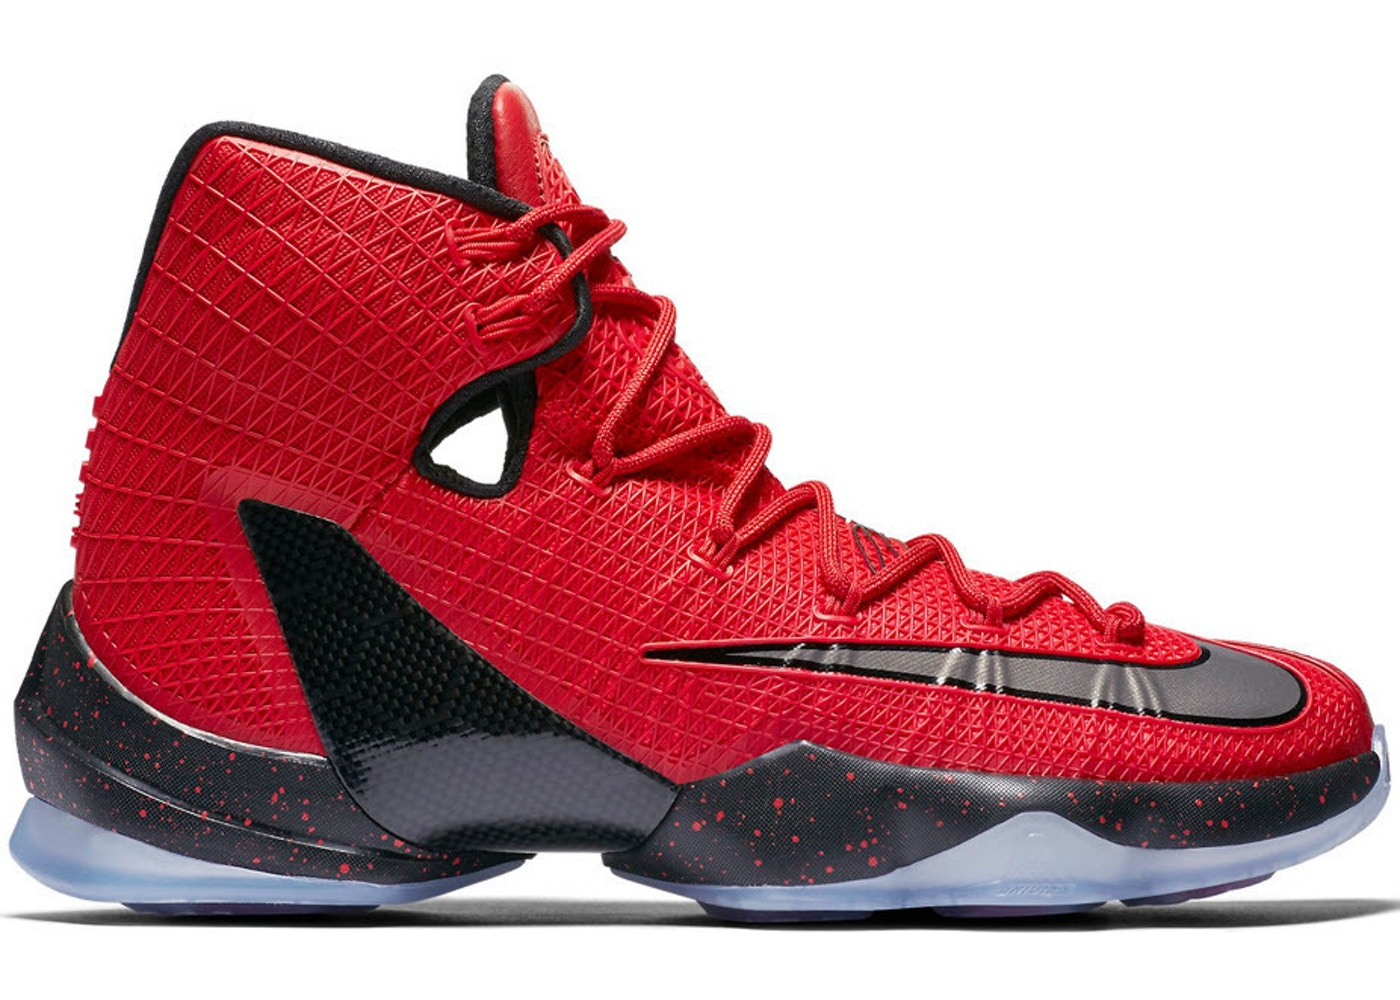 new style 52181 3bd58 Buy Nike LeBron 13 Shoes   Deadstock Sneakers